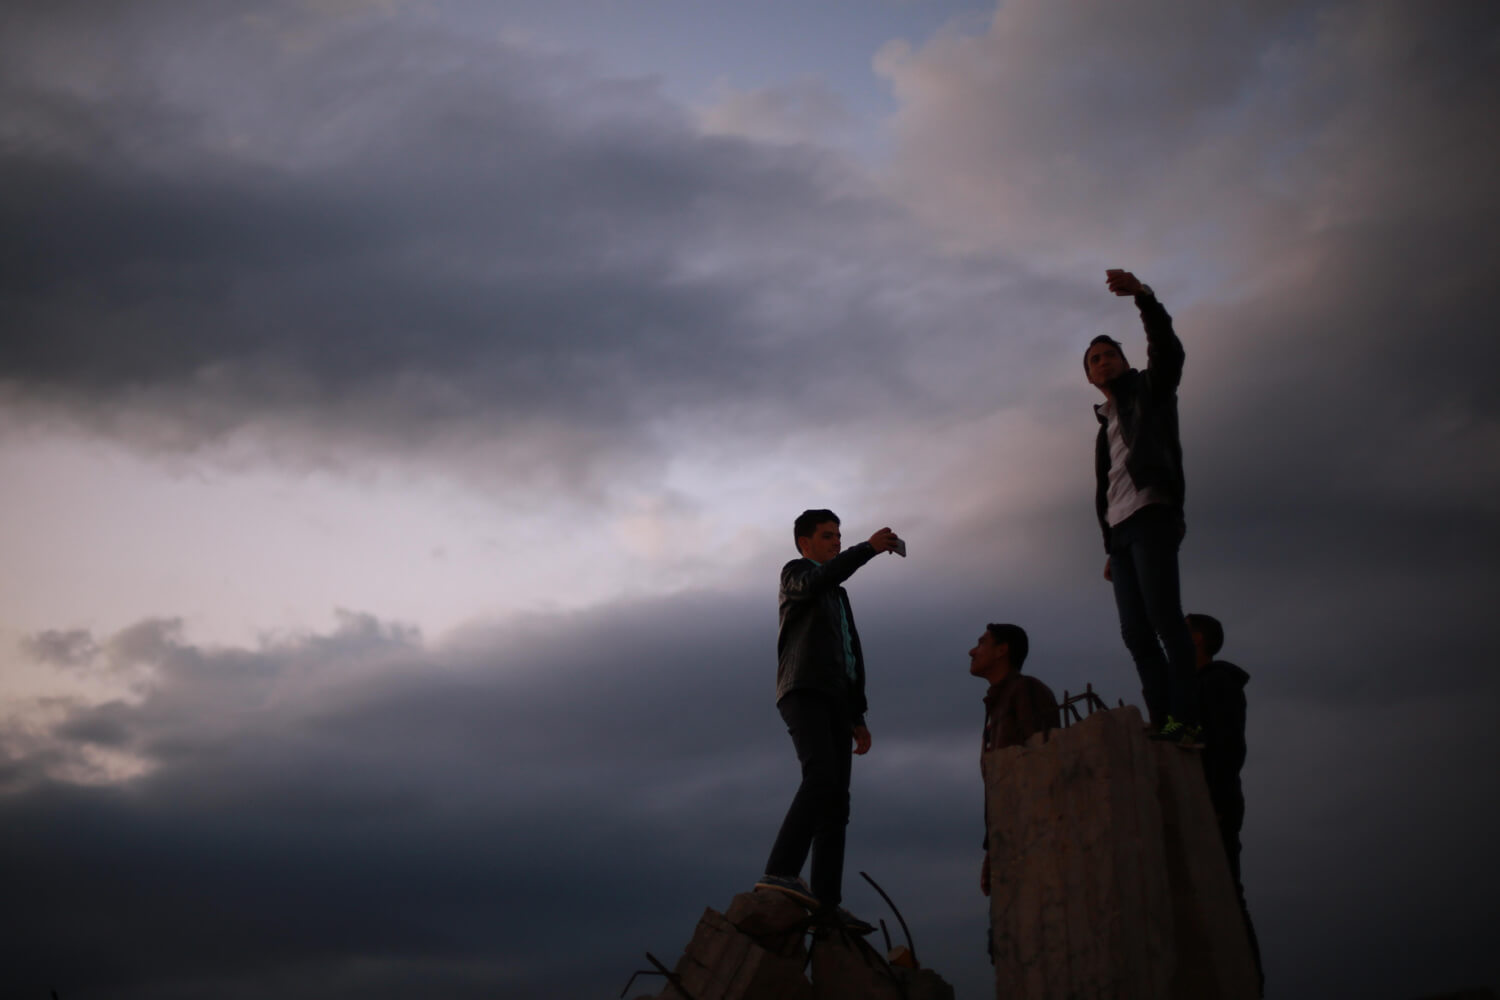 Youth take selfies with the sky as a backdrop (Photo: Mohammed Asad)